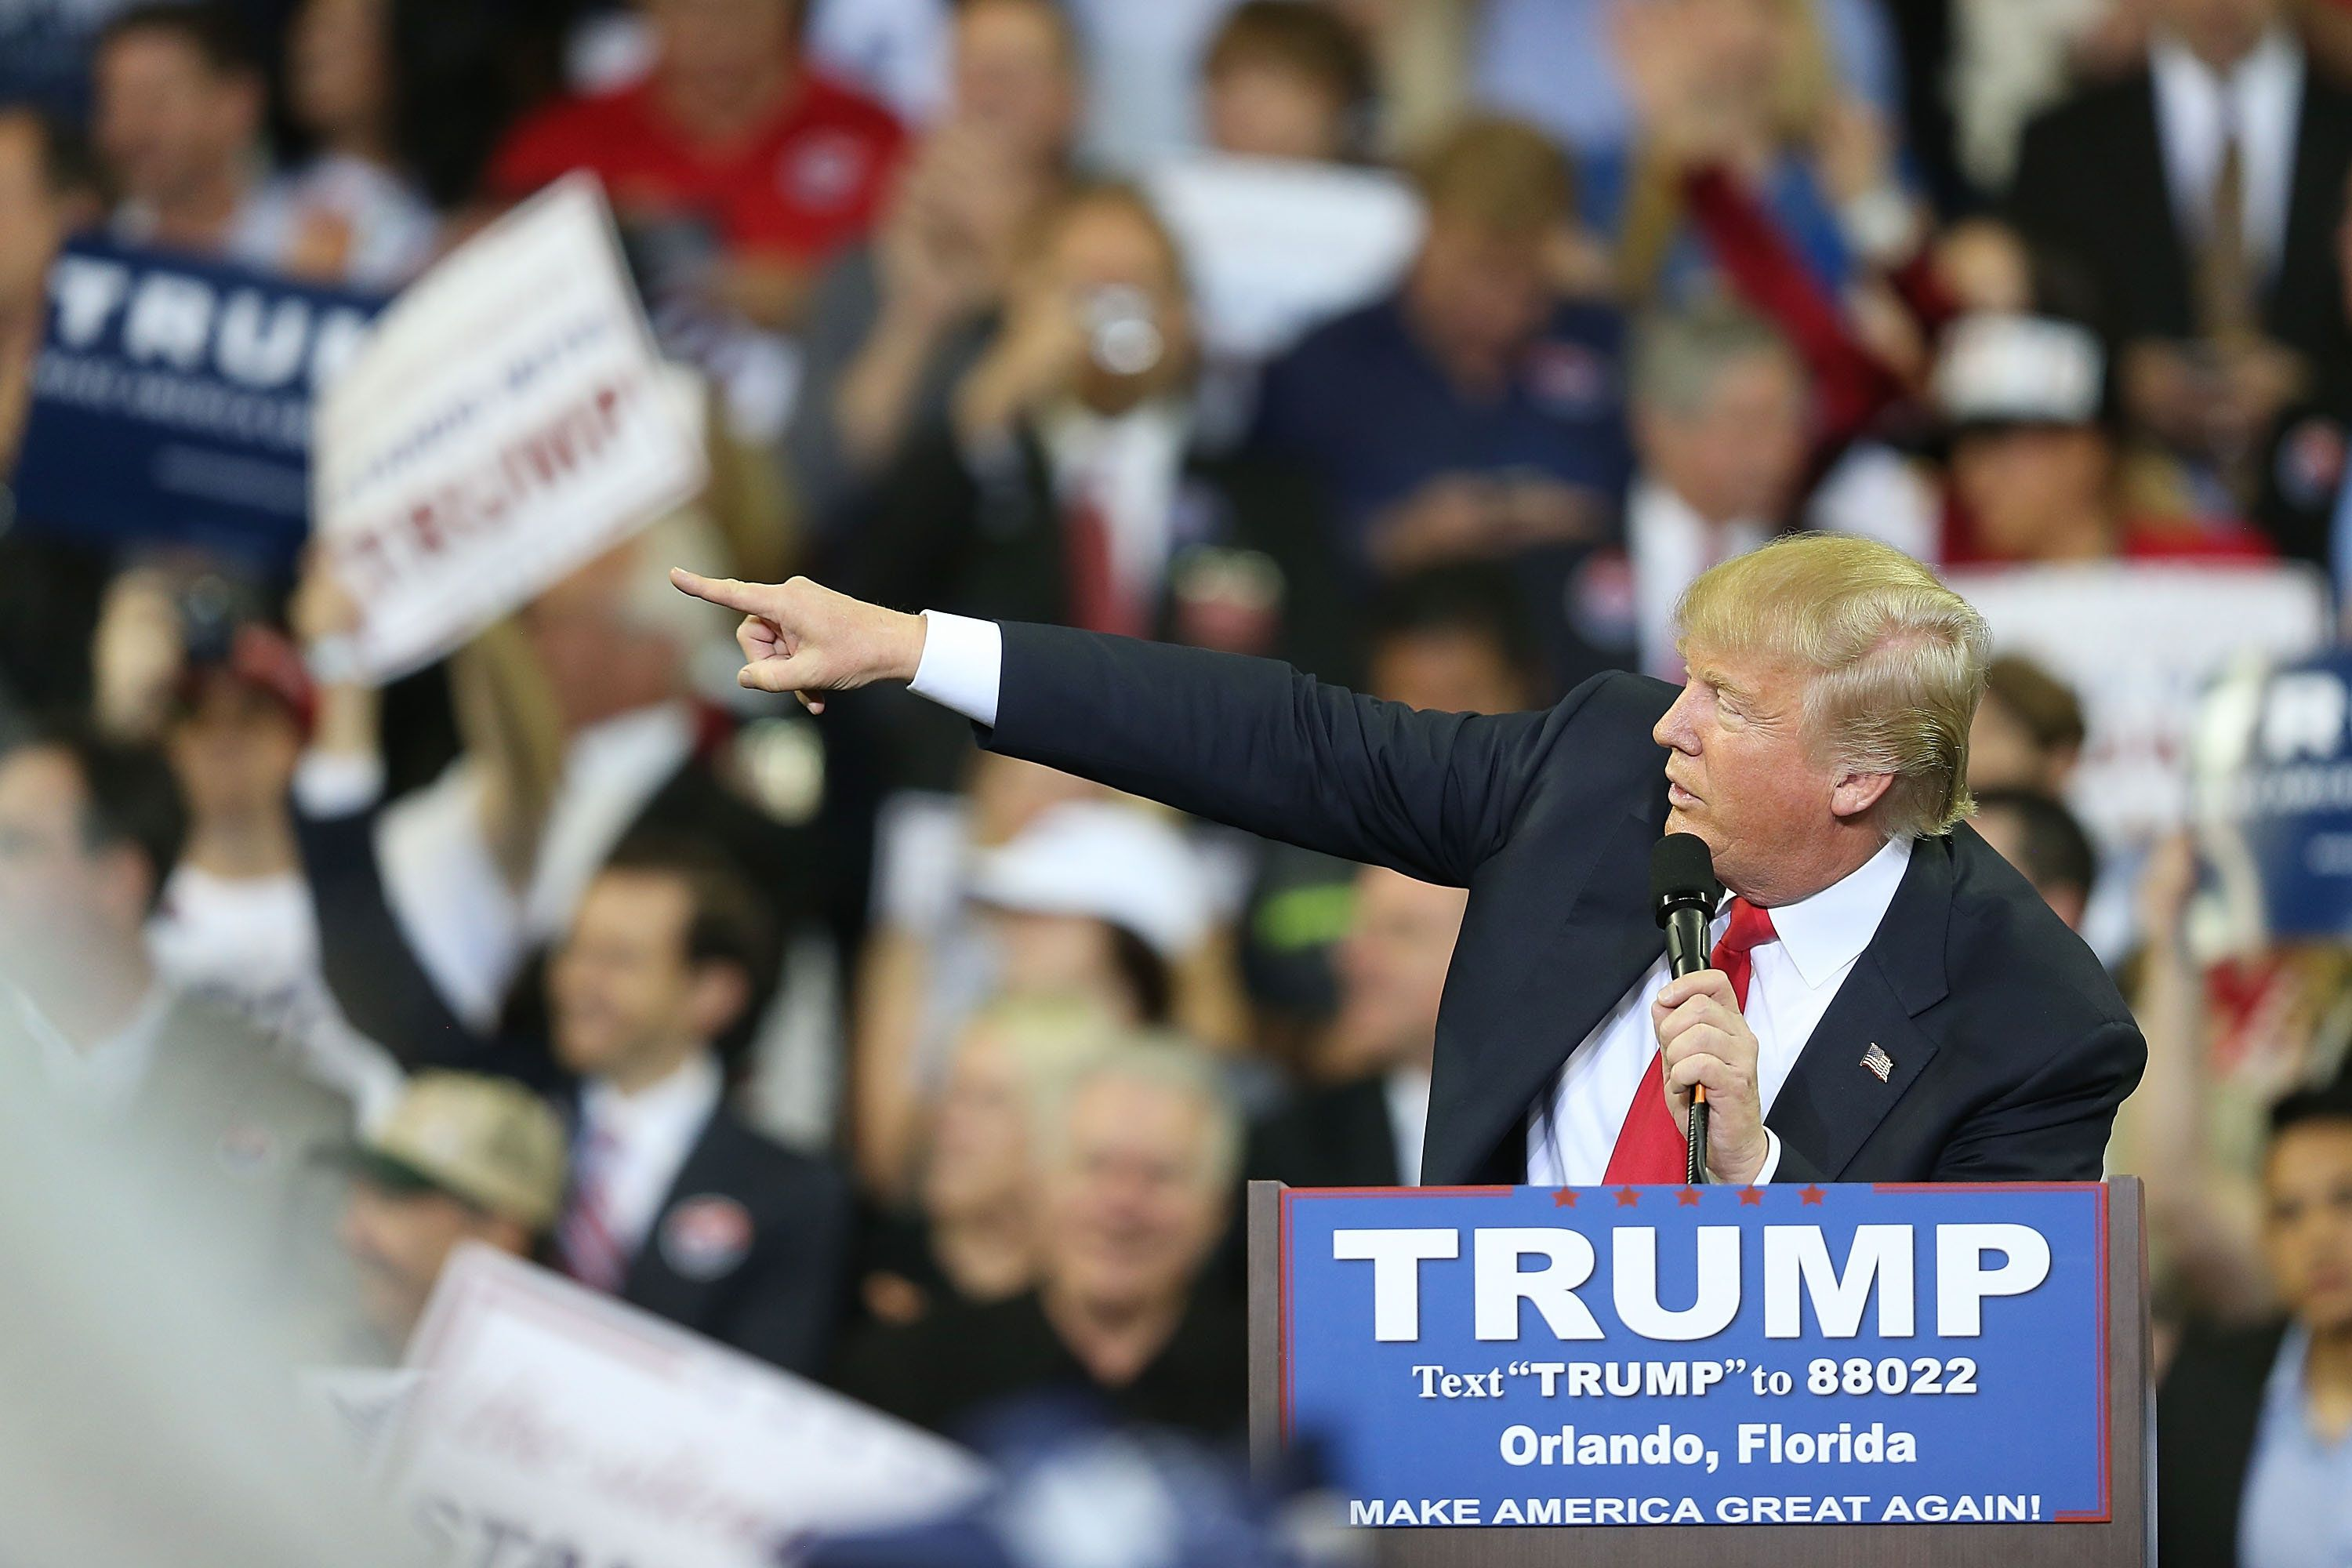 ORLANDO, FL - MARCH 05:  Republican presidential candidate Donald Trump speaks at the CFE Arena during a campaign stop on the campus of the University of Central Florida  on March 5, 2016 in Orlando, Florida.  Primary voters head to the polls on March 15th in Florida.  (Photo by Joe Raedle/Getty Images)